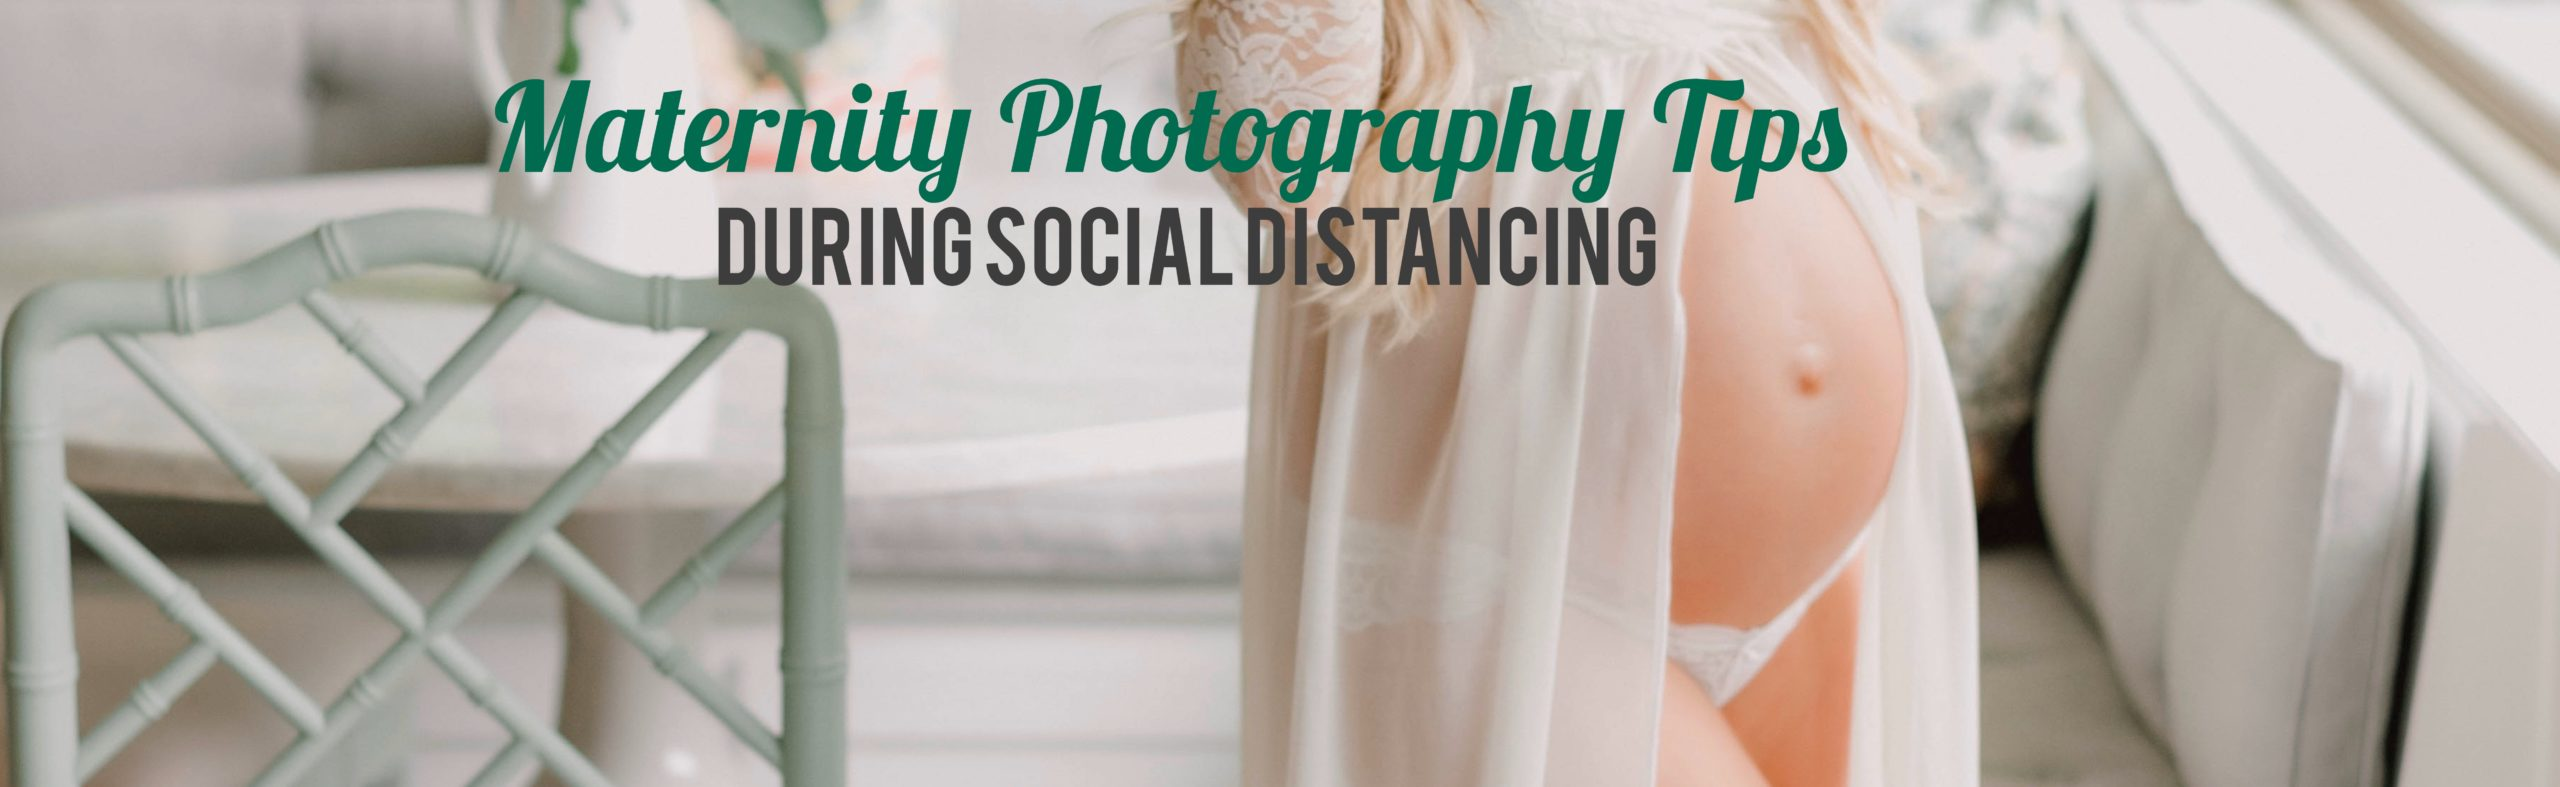 maternity photo tips during quarantine